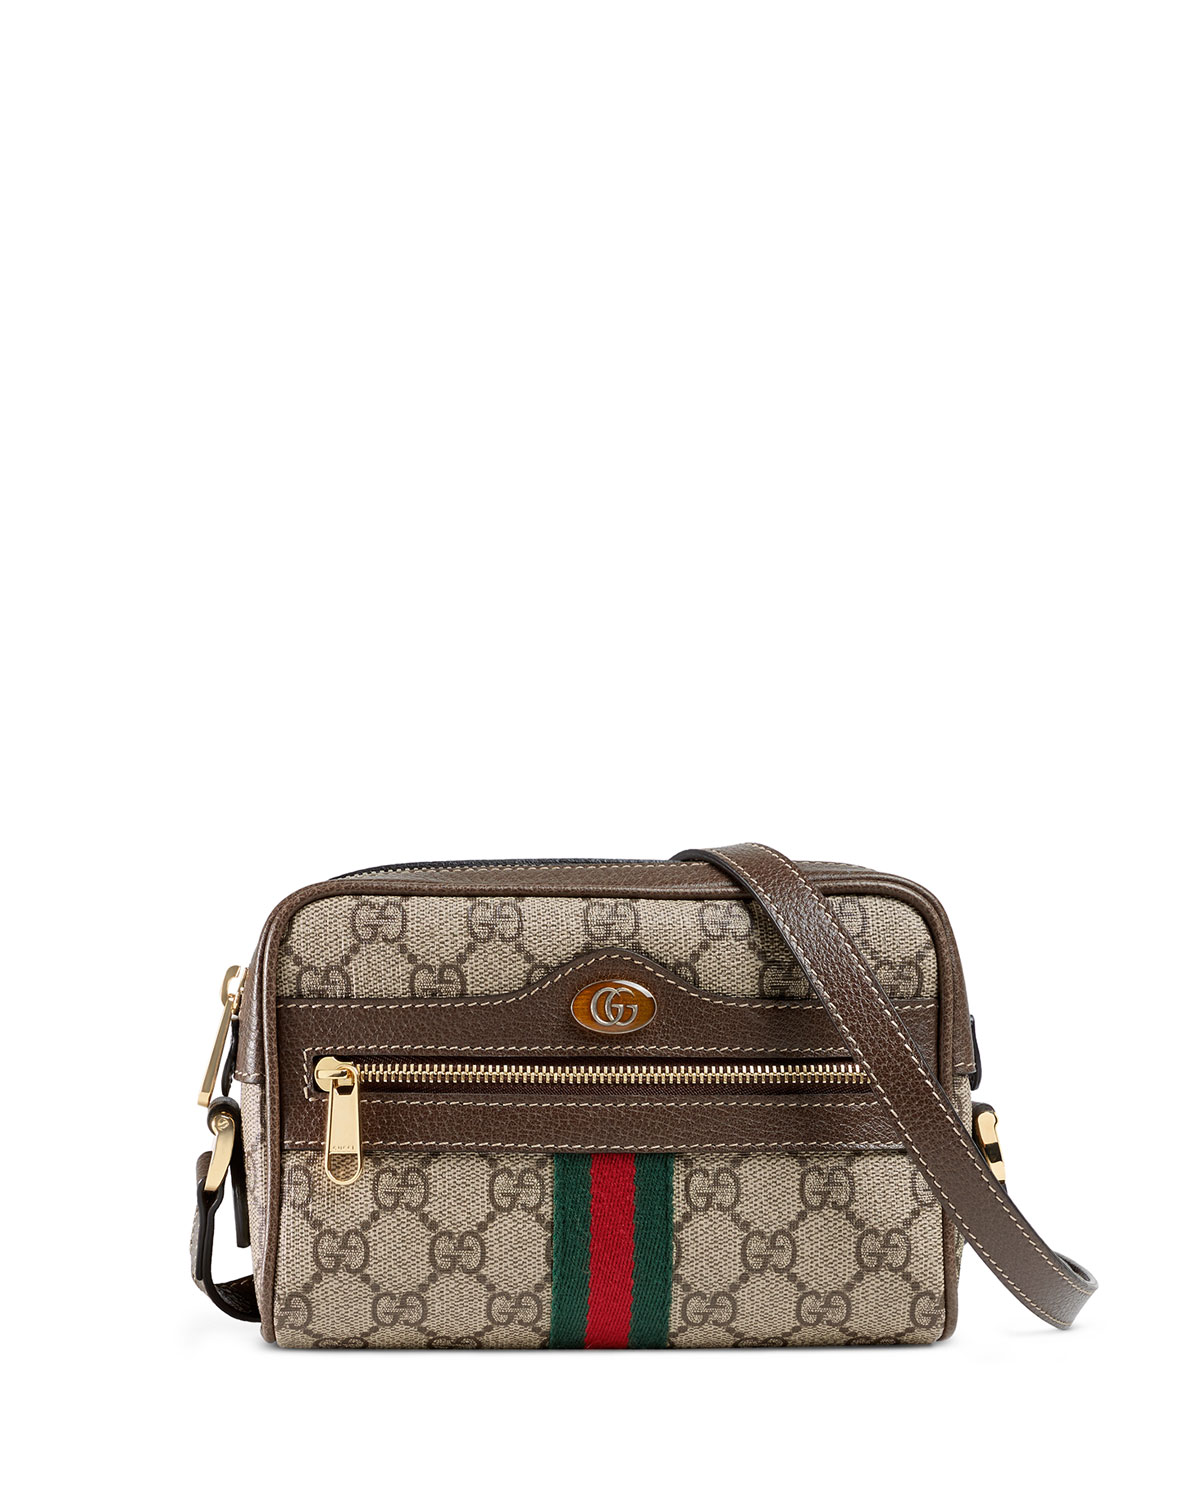 fe61fb854119 Gucci Ophidia Small GG Supreme Crossbody Bag